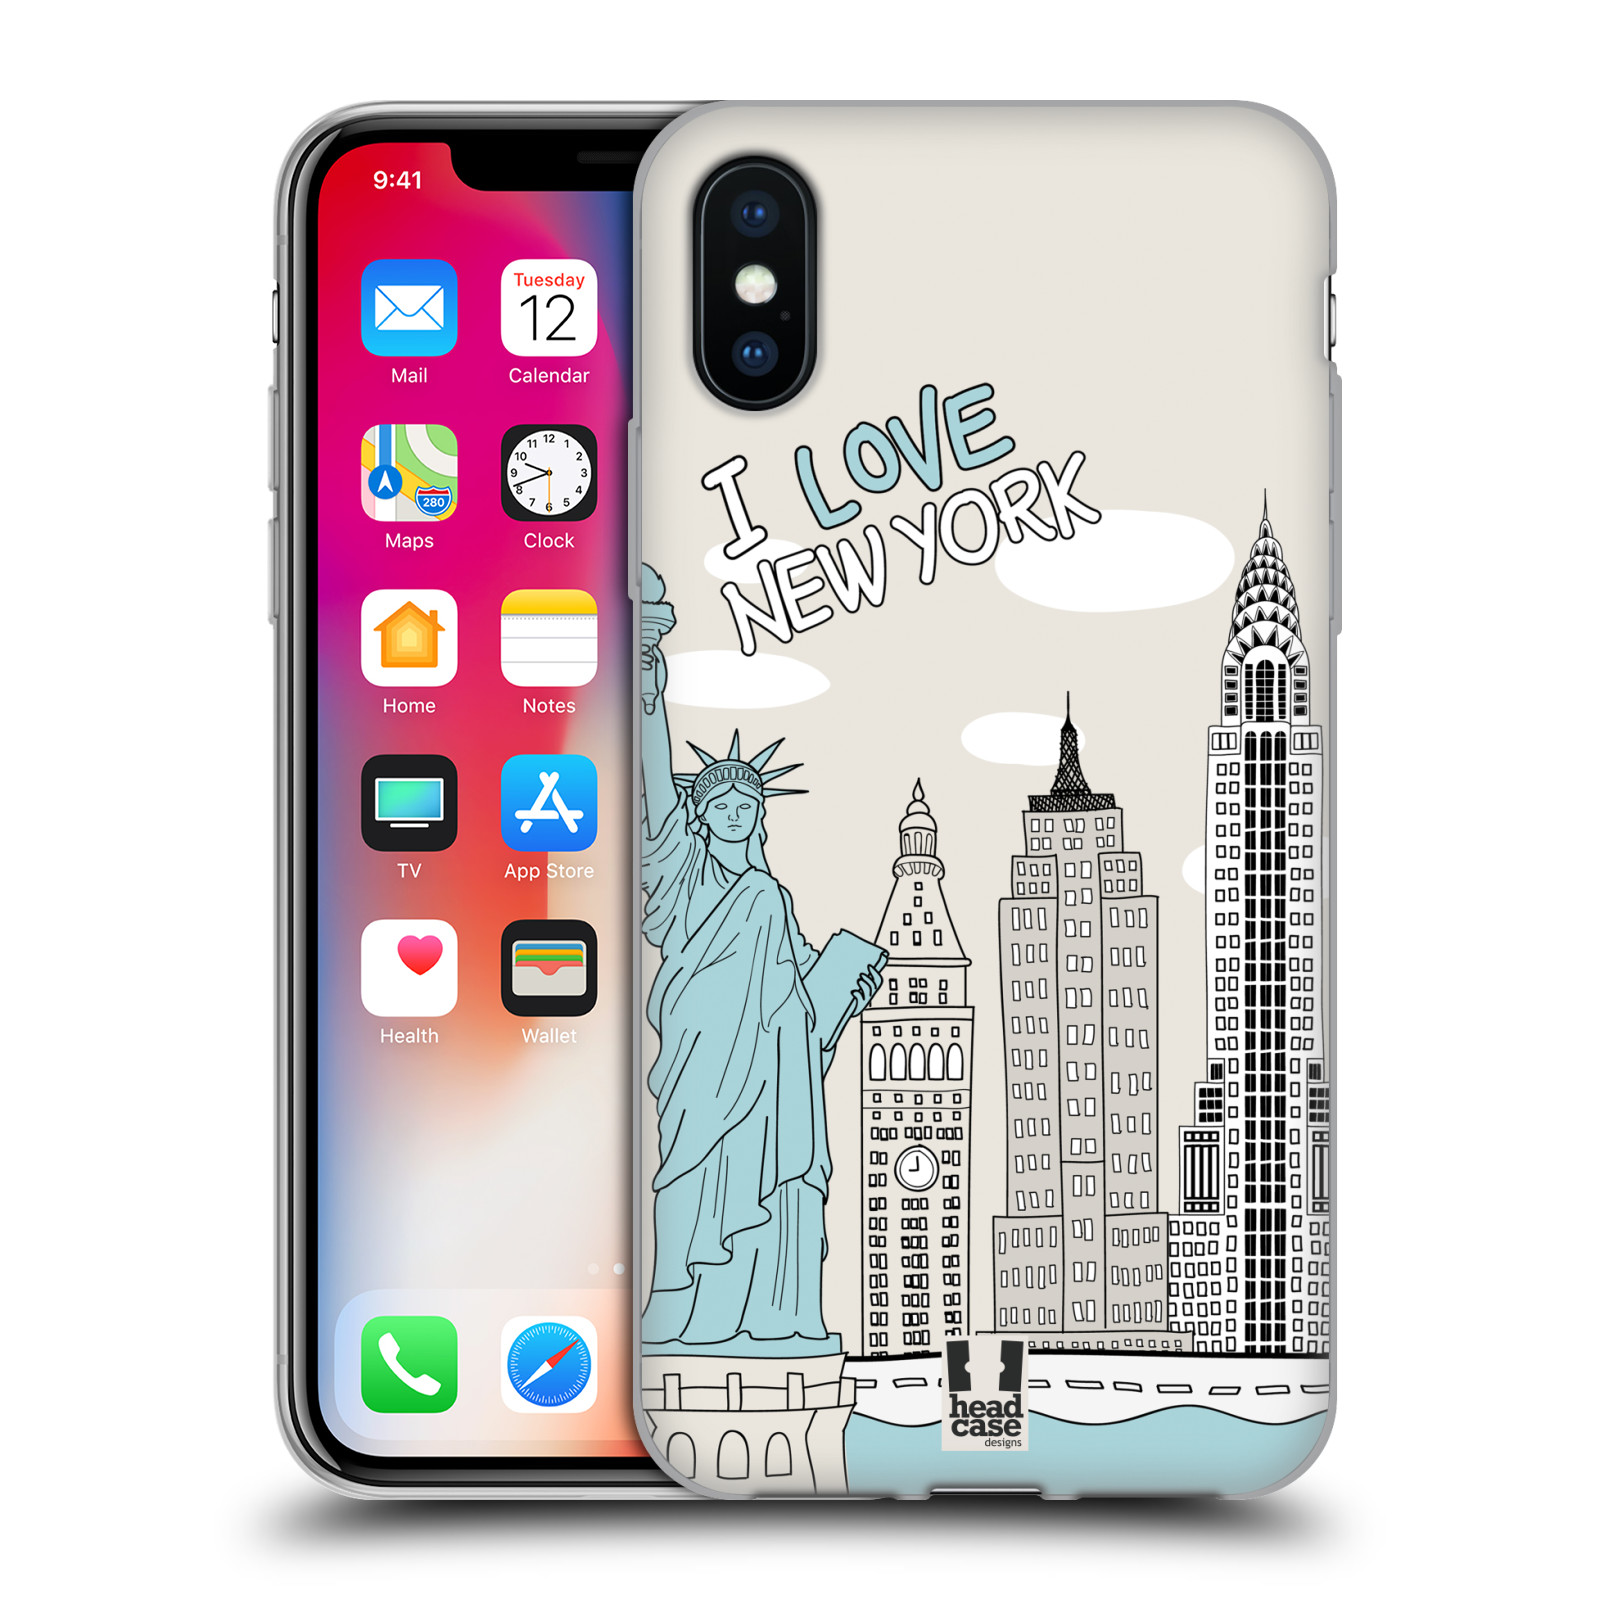 HEAD CASE silikonový obal na mobil Apple Iphone X vzor Kreslená městečka MODRÁ, USA, New York, I LOVE NEW YORK